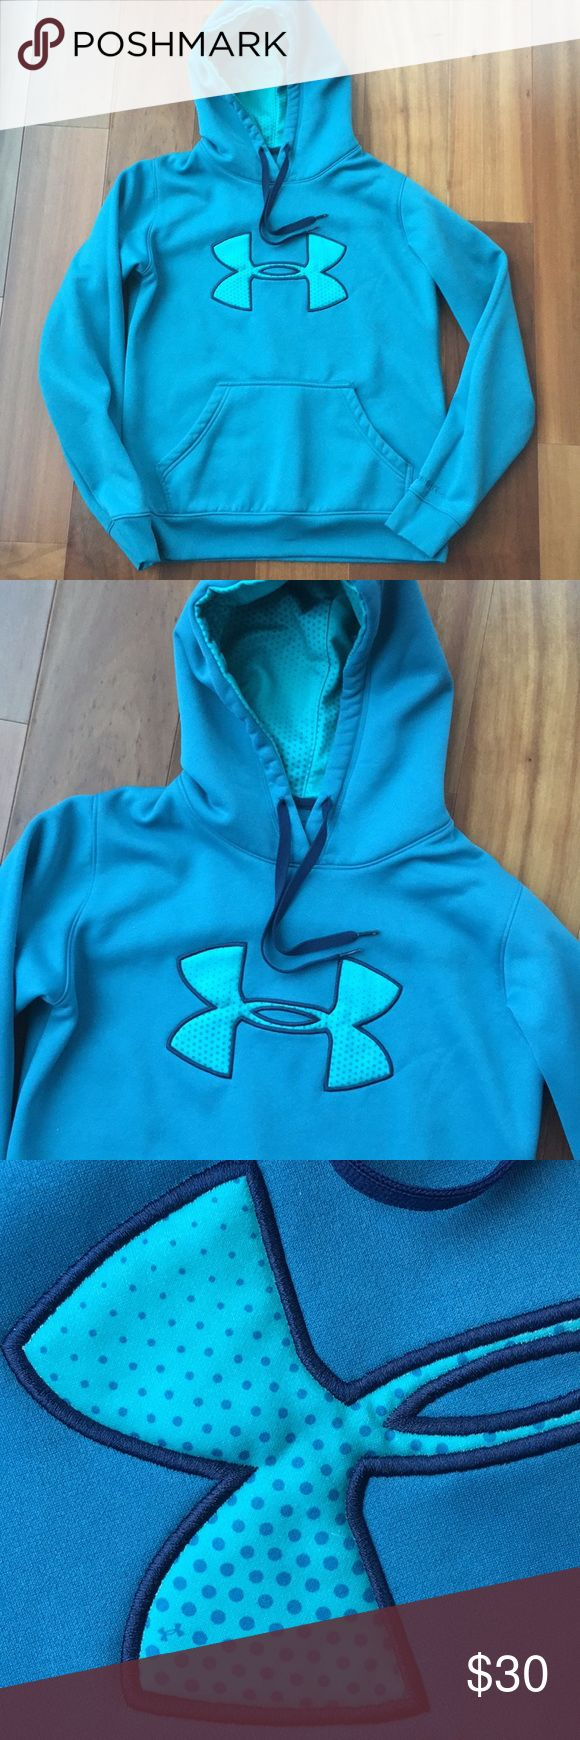 Under Armour hoodie Nice turquoise blue UA hoodie with polka dot accents. Great used condition. Women's small semi-fitted style. Under Armour Tops Sweatshirts & Hoodies